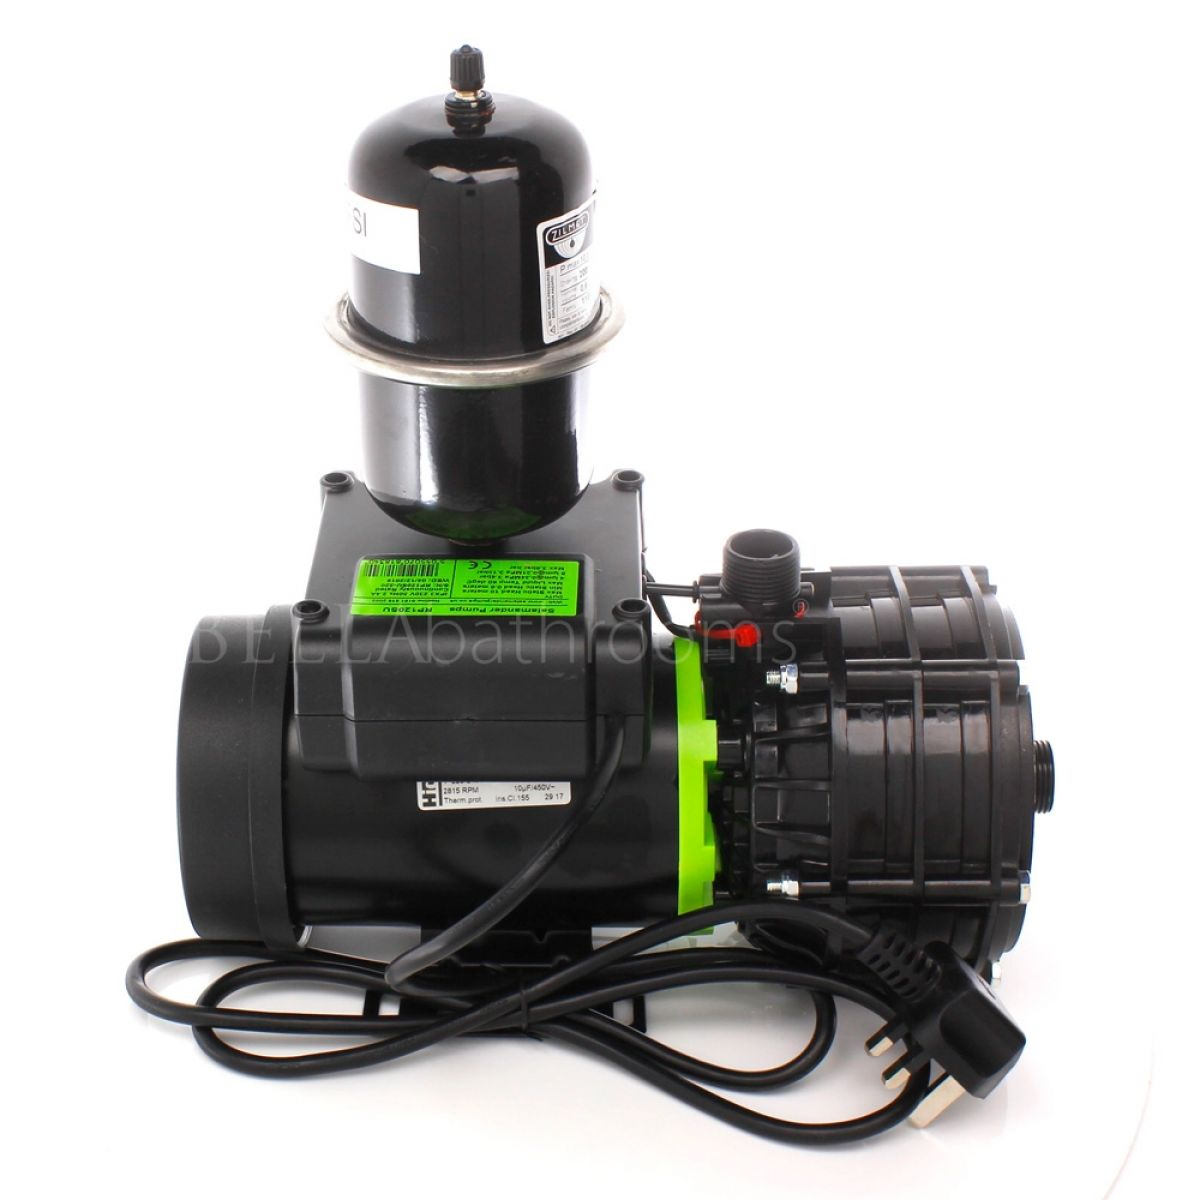 Salamander RP120SU 3.6 Bar Single Universal Whole House Shower Pump Back